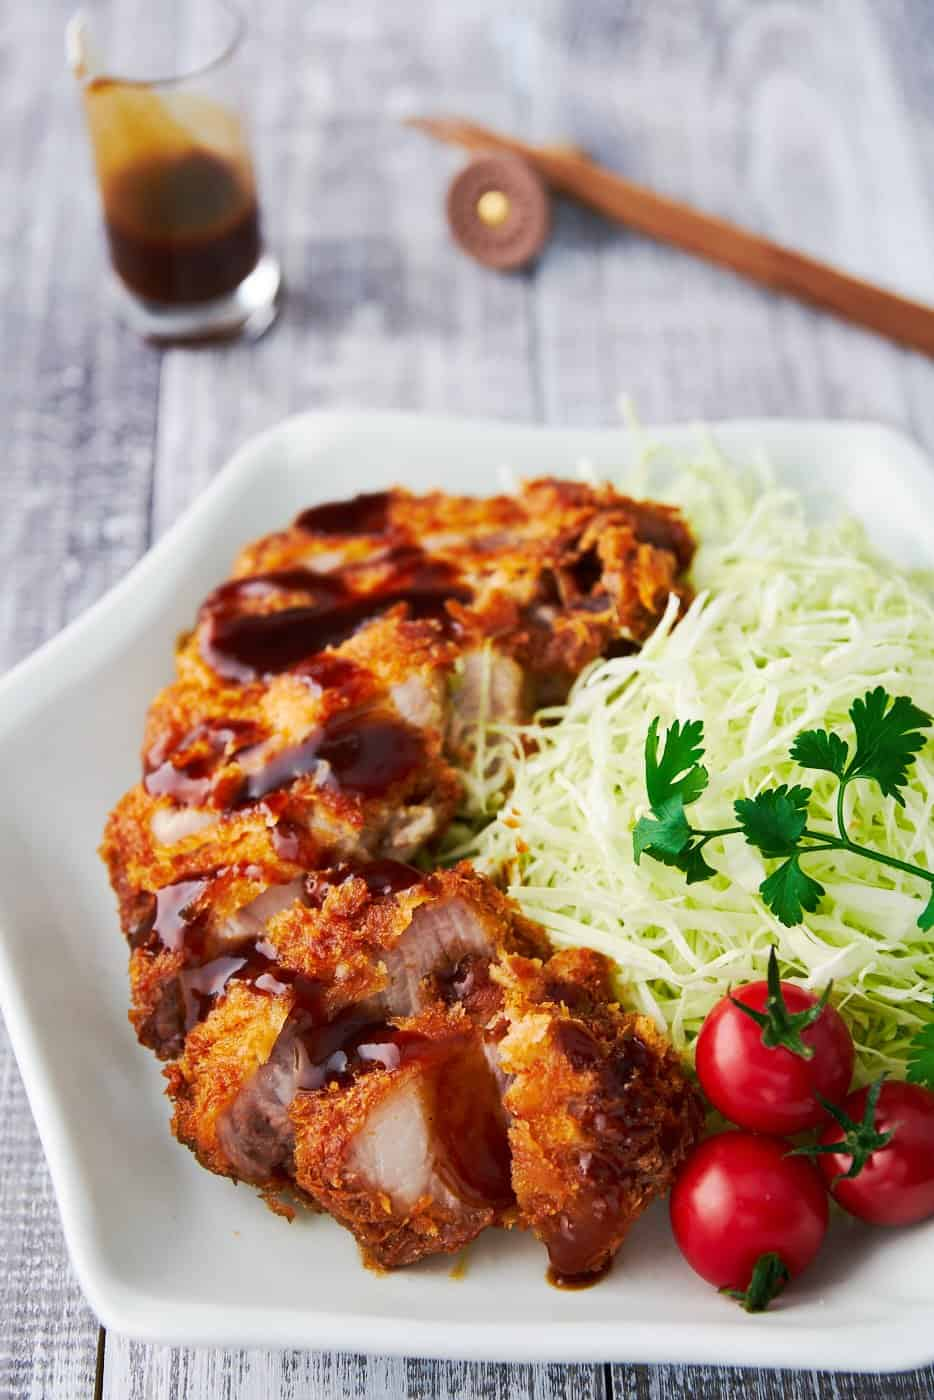 With thick rib-chops coated in a shatteringly crisp layer of panko breadcrumbs, and served with a spiced fruit sauce, Tonkatsu is Japanese home cooking at it's best.